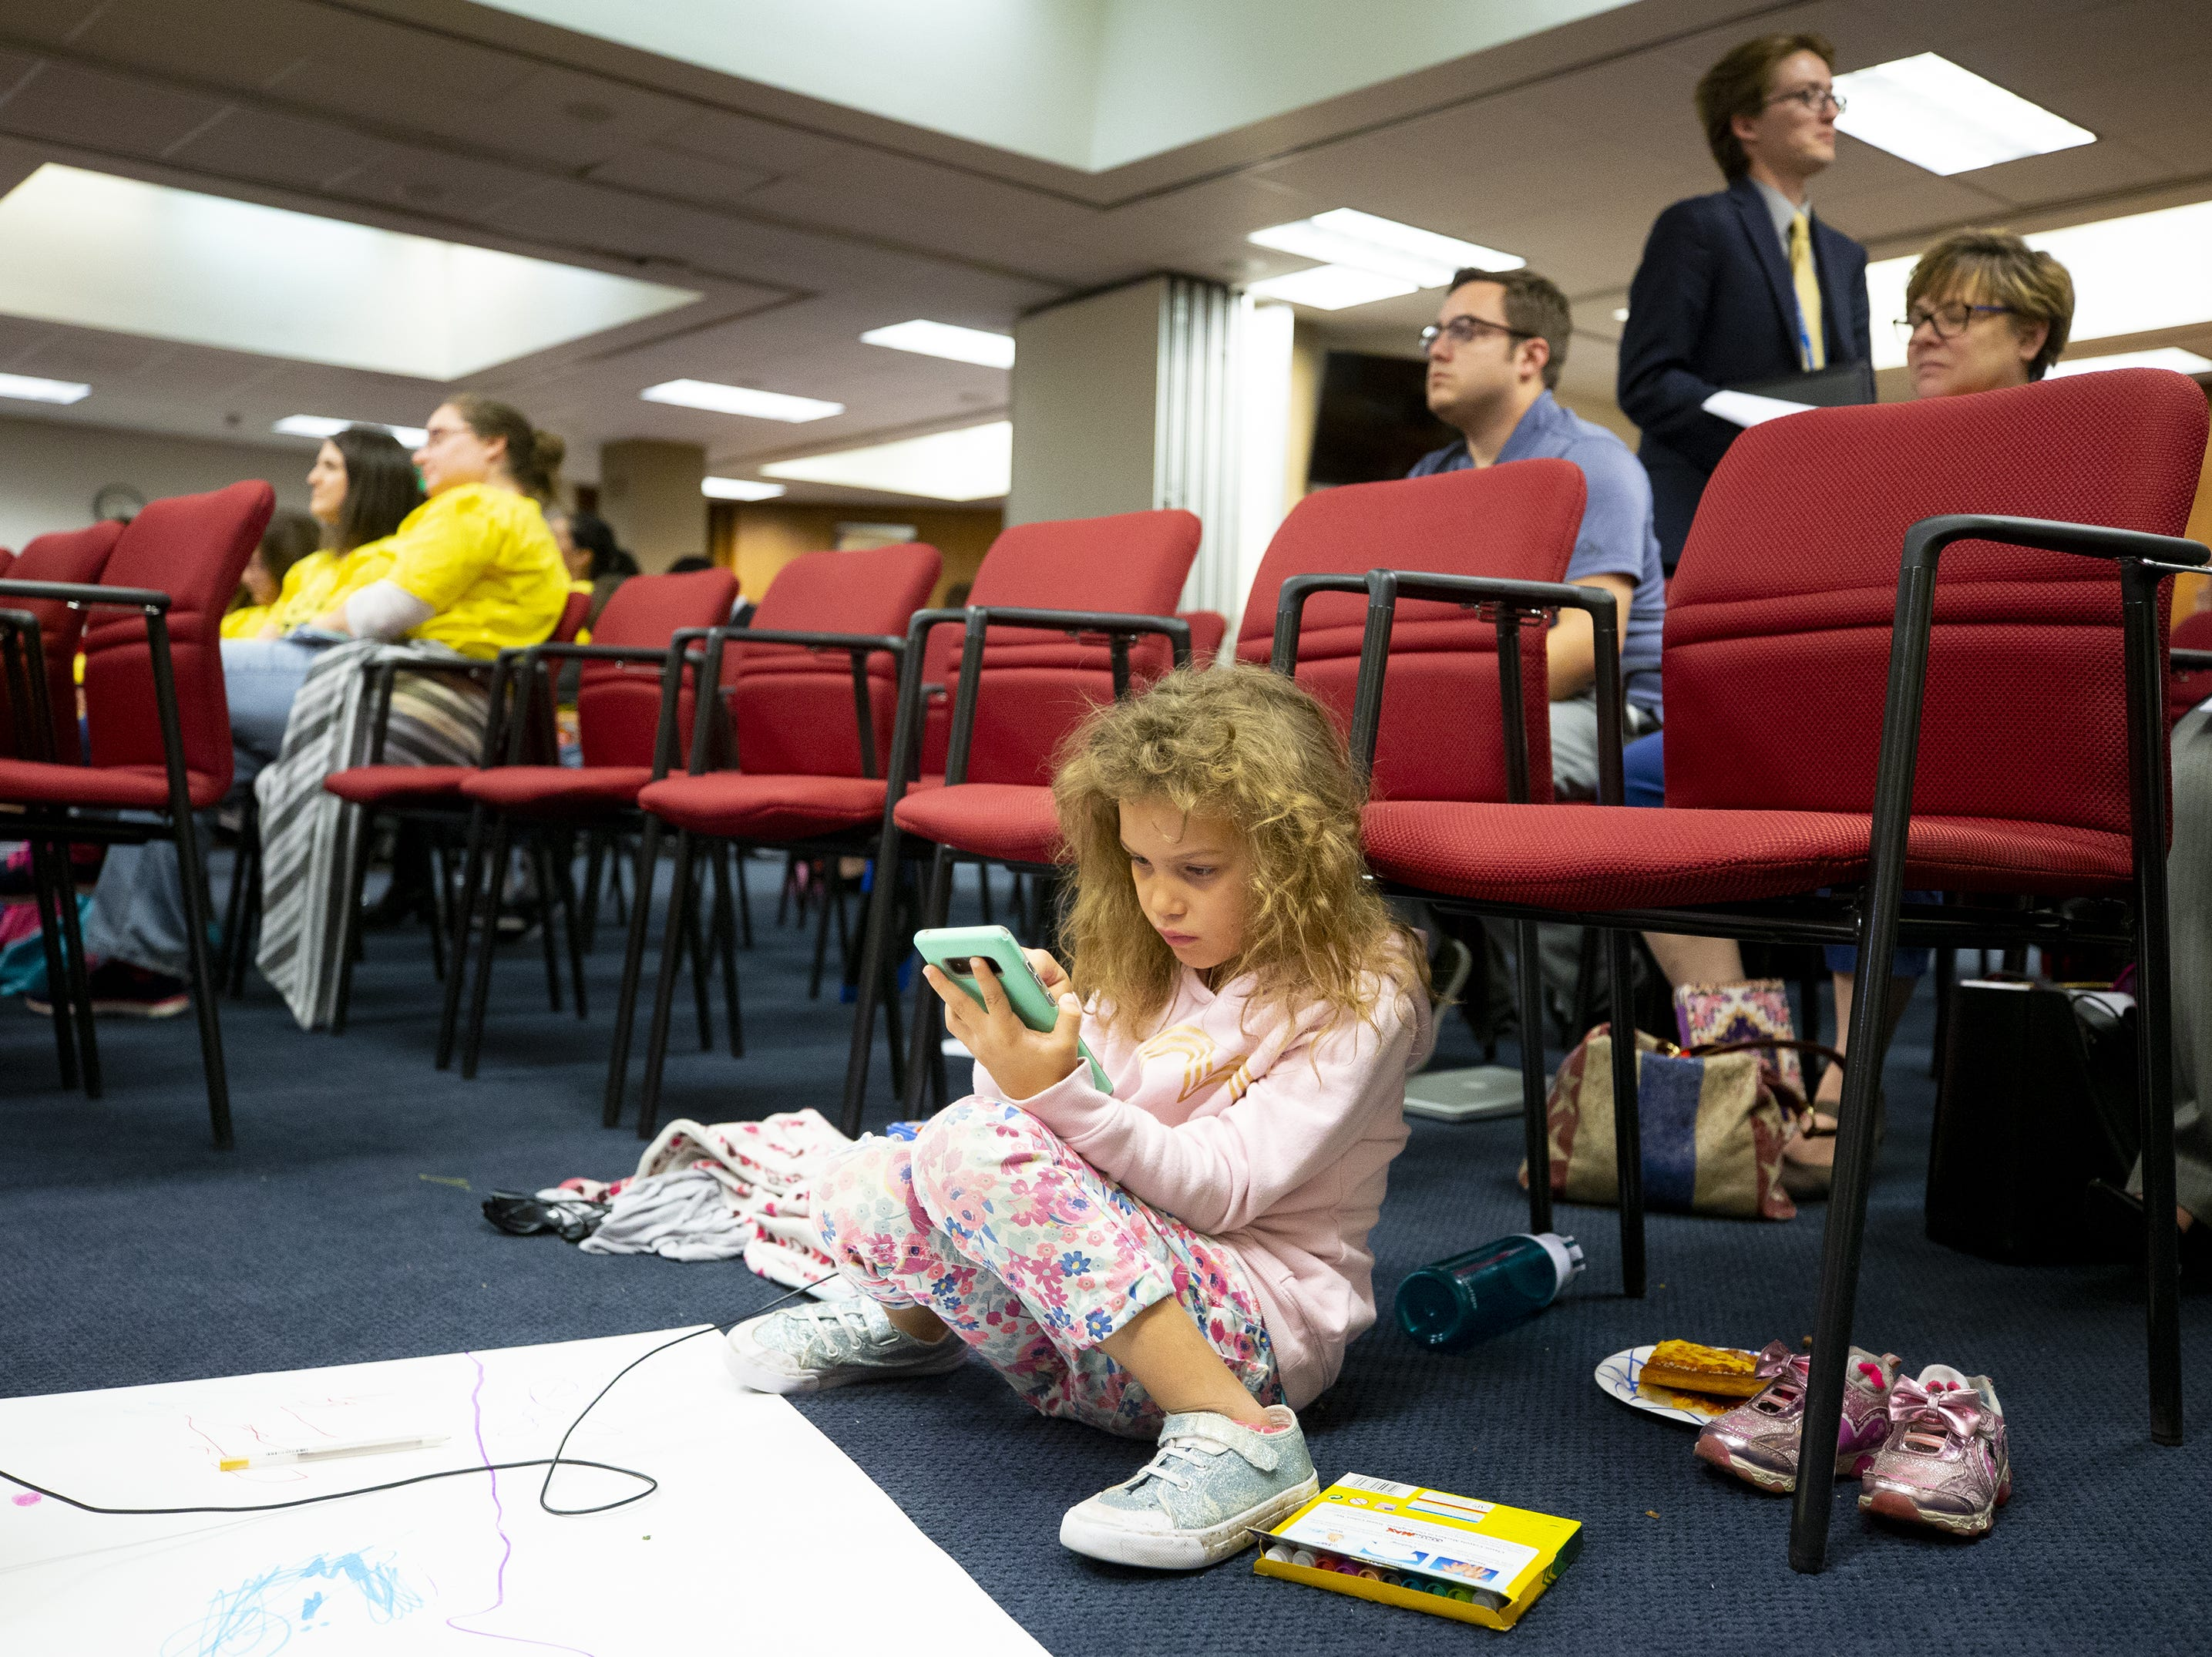 Sarah Svedin, of Queen Creek, keeps herself entertained during a hearing on school vouchers in a senate hearing room at the state Capitol in Phoenix on February 13.